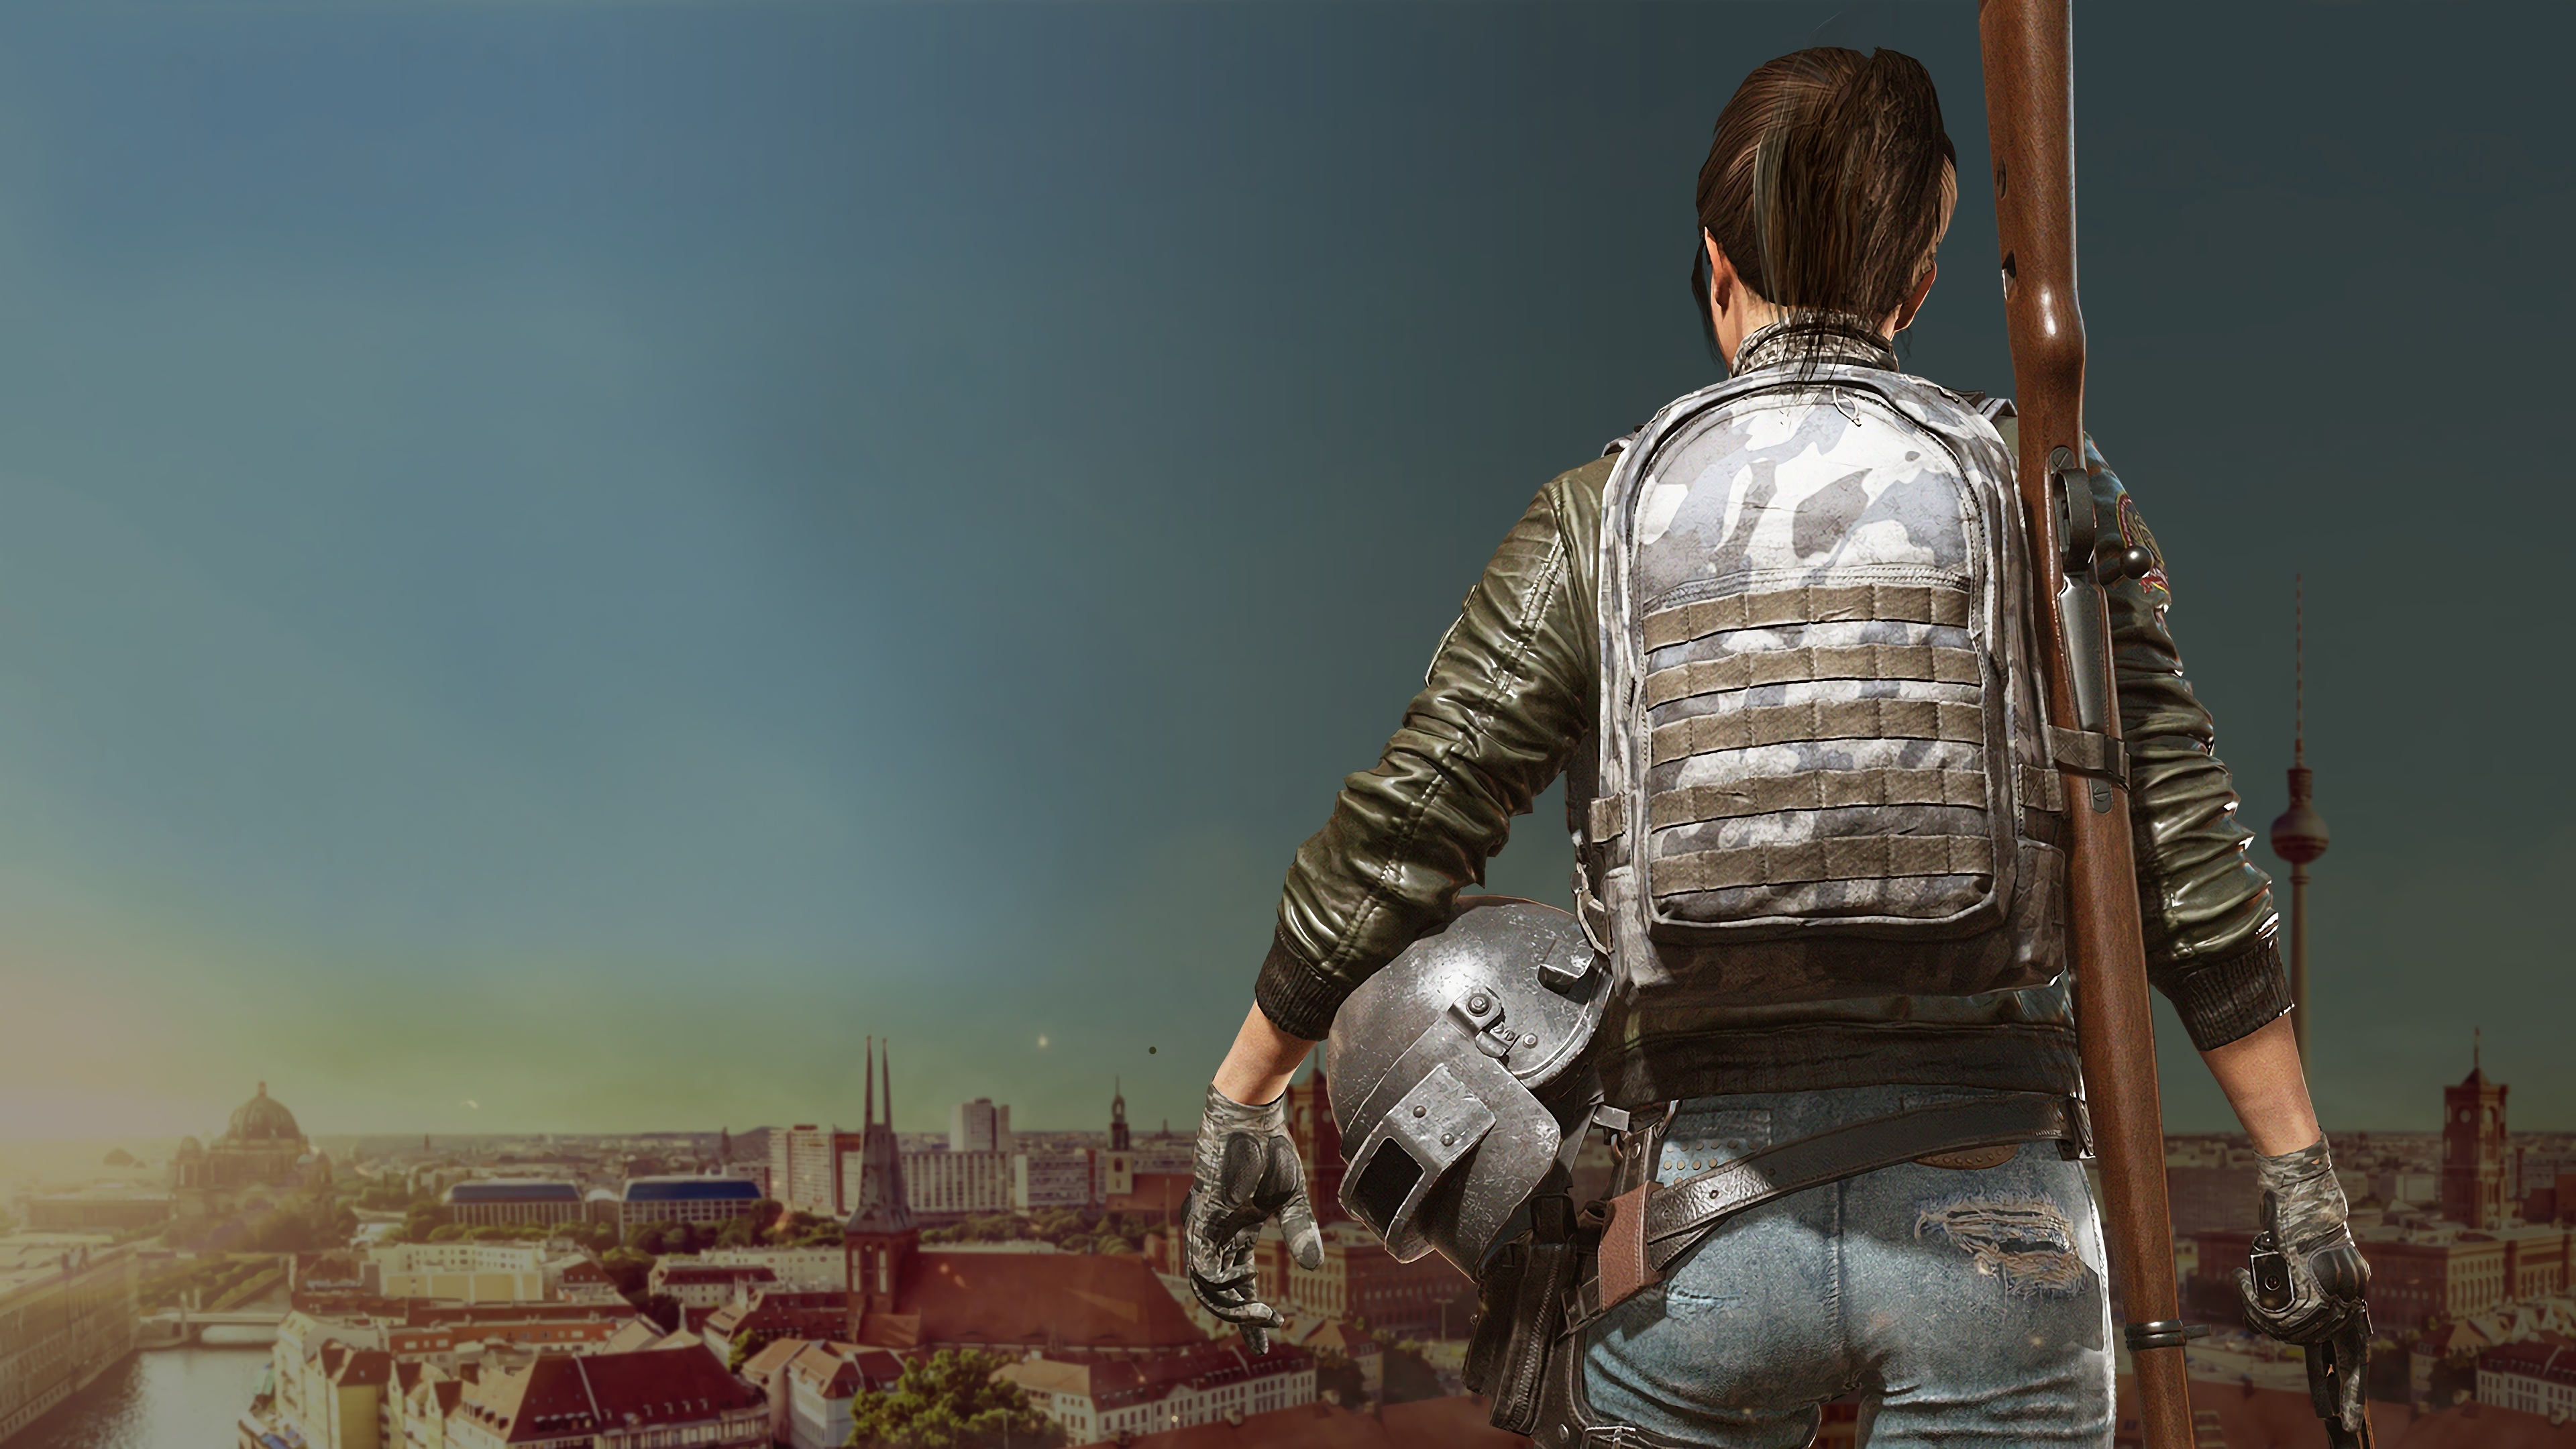 Game Girl Pubg 4k, HD Games, 4k Wallpapers, Images